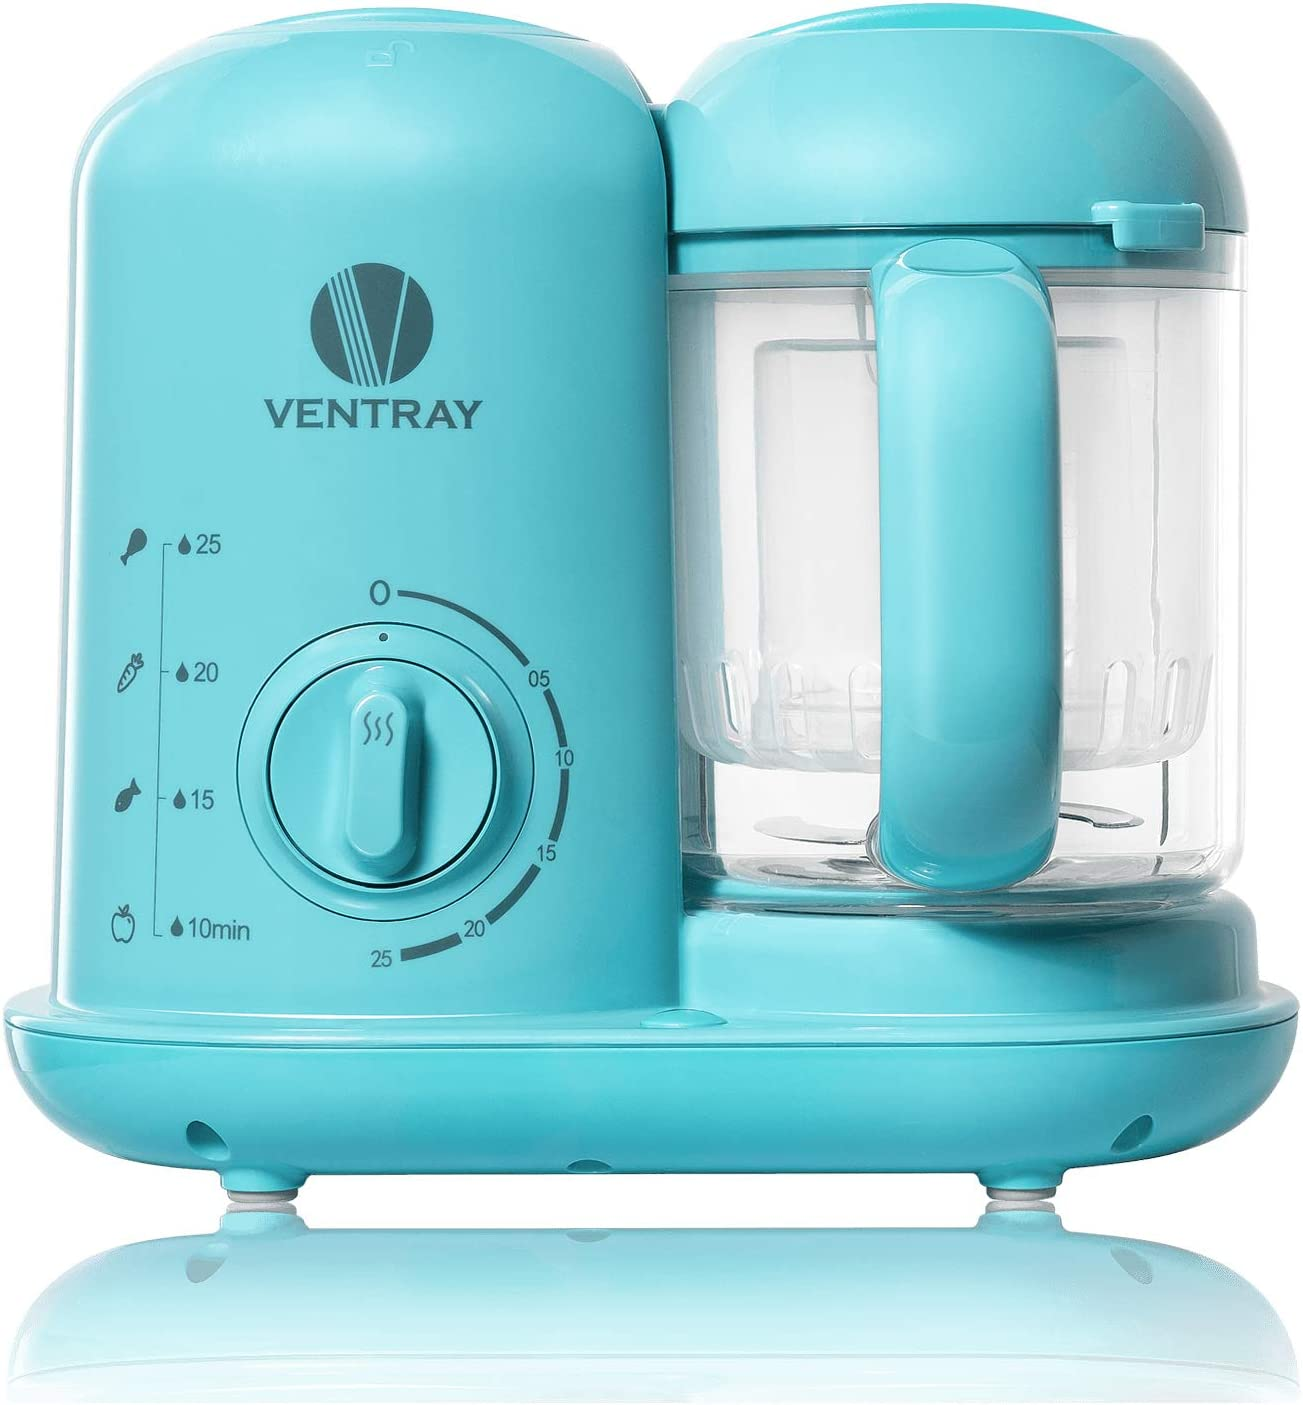 Ventray BabyGrow 100 Baby Food Maker, Puree Food Processor Steamer Blender Cooker Warmer Machine for Baby Toddler, All-in-one Auto Cooking Easy Clean and BPA-Free - Blue